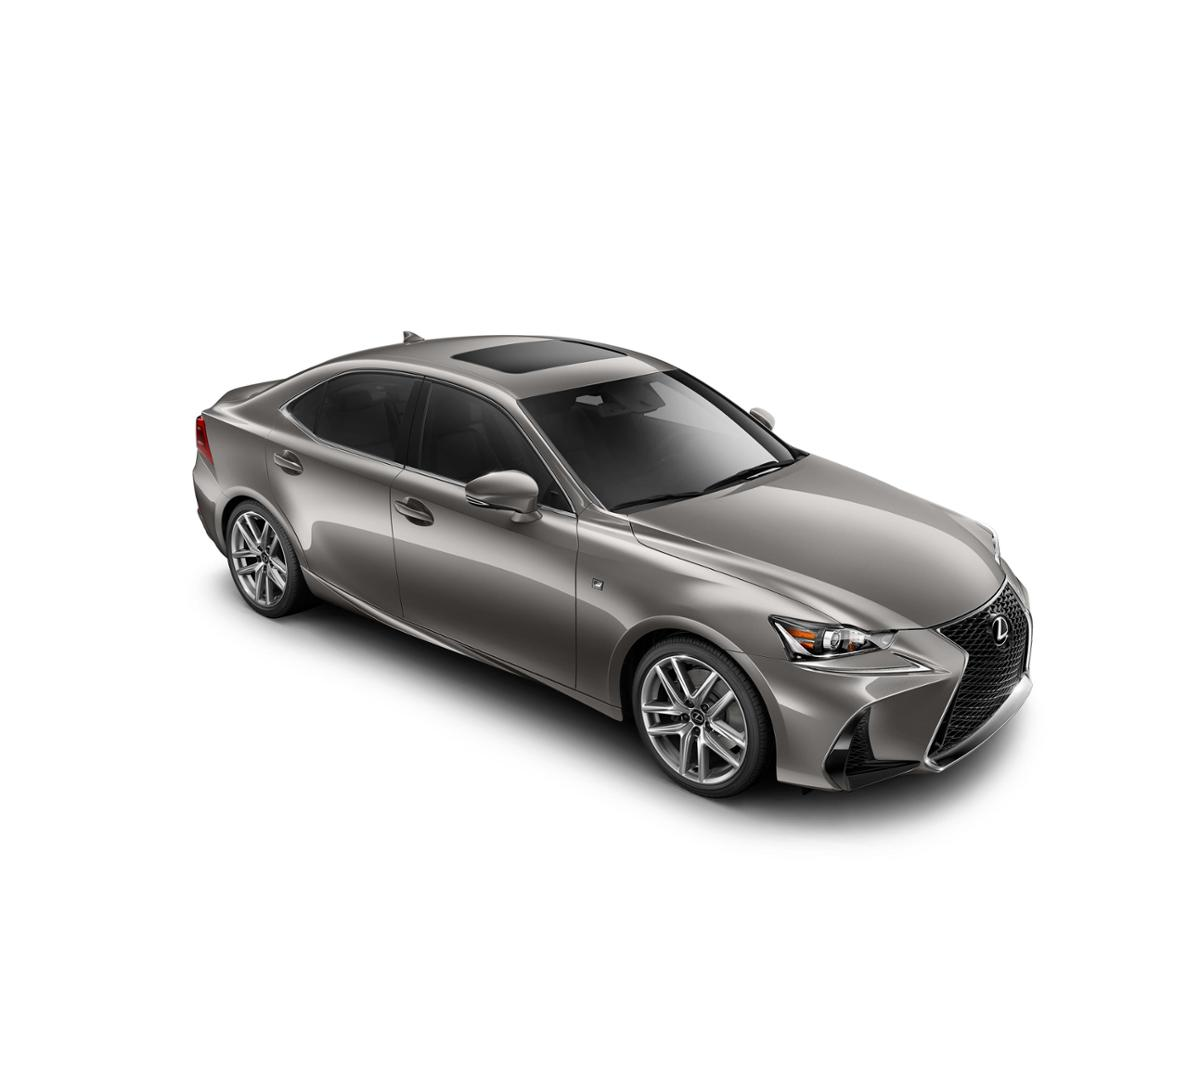 2019 Atomic Silver F SPORT Lexus IS 350 For Sale In San